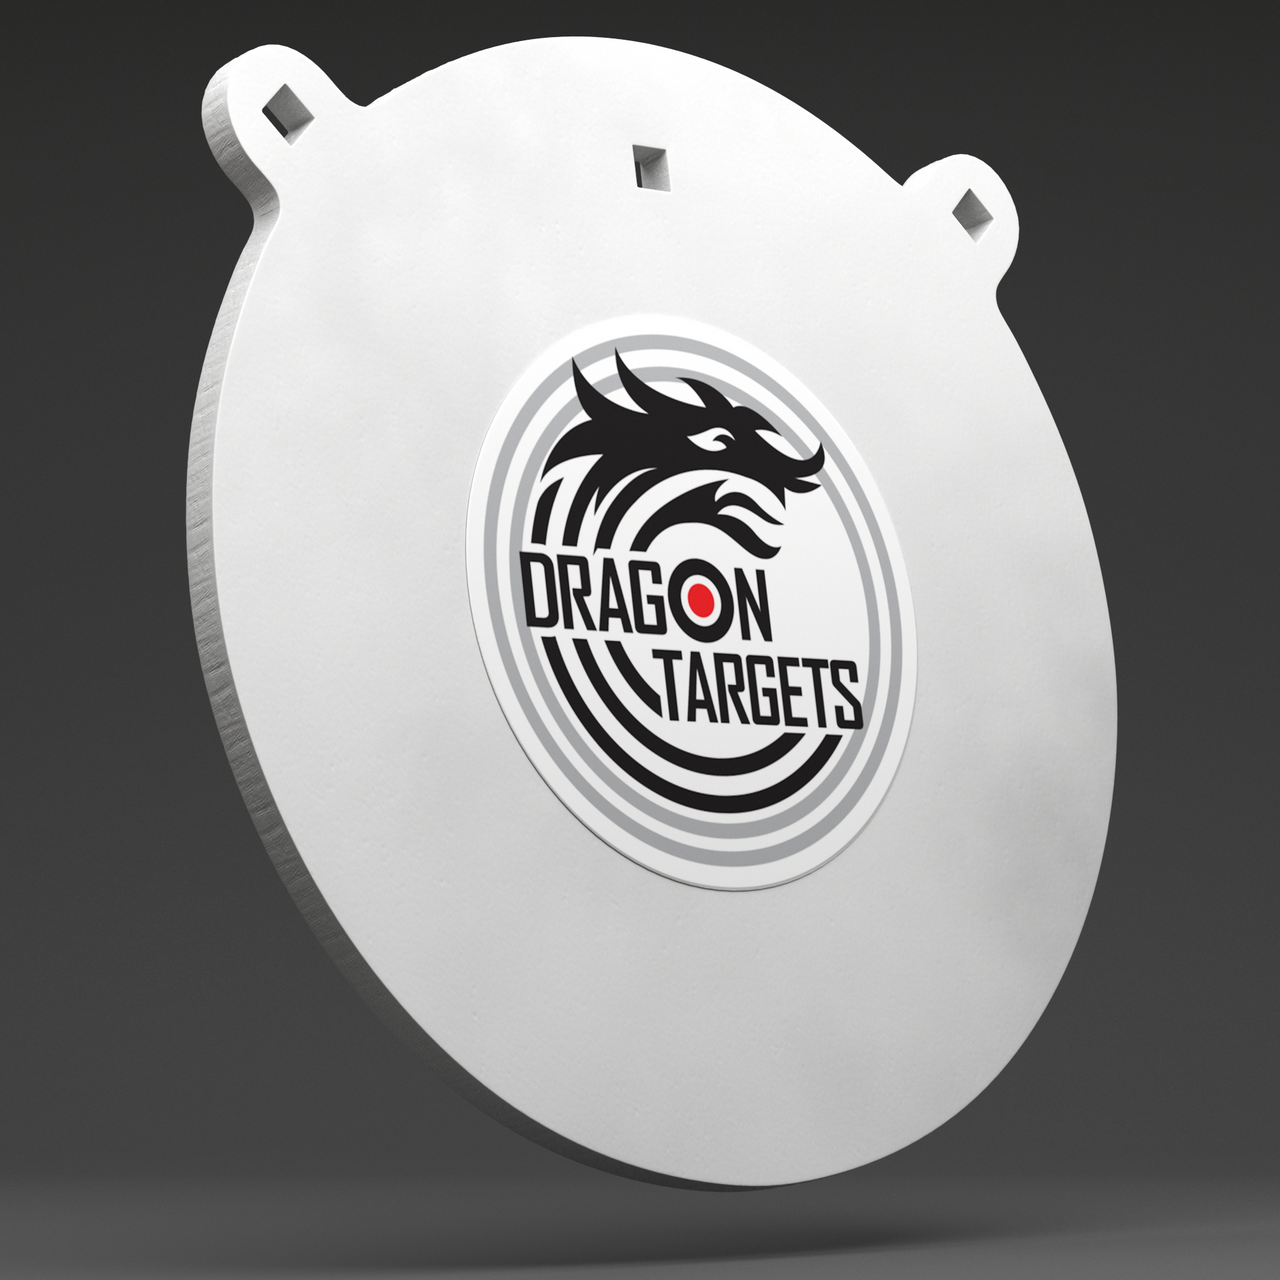 """Dragon Targets 10""""x 3/8"""" Gong  AR500 Steel Shooting Target with 3/8"""" Holes"""